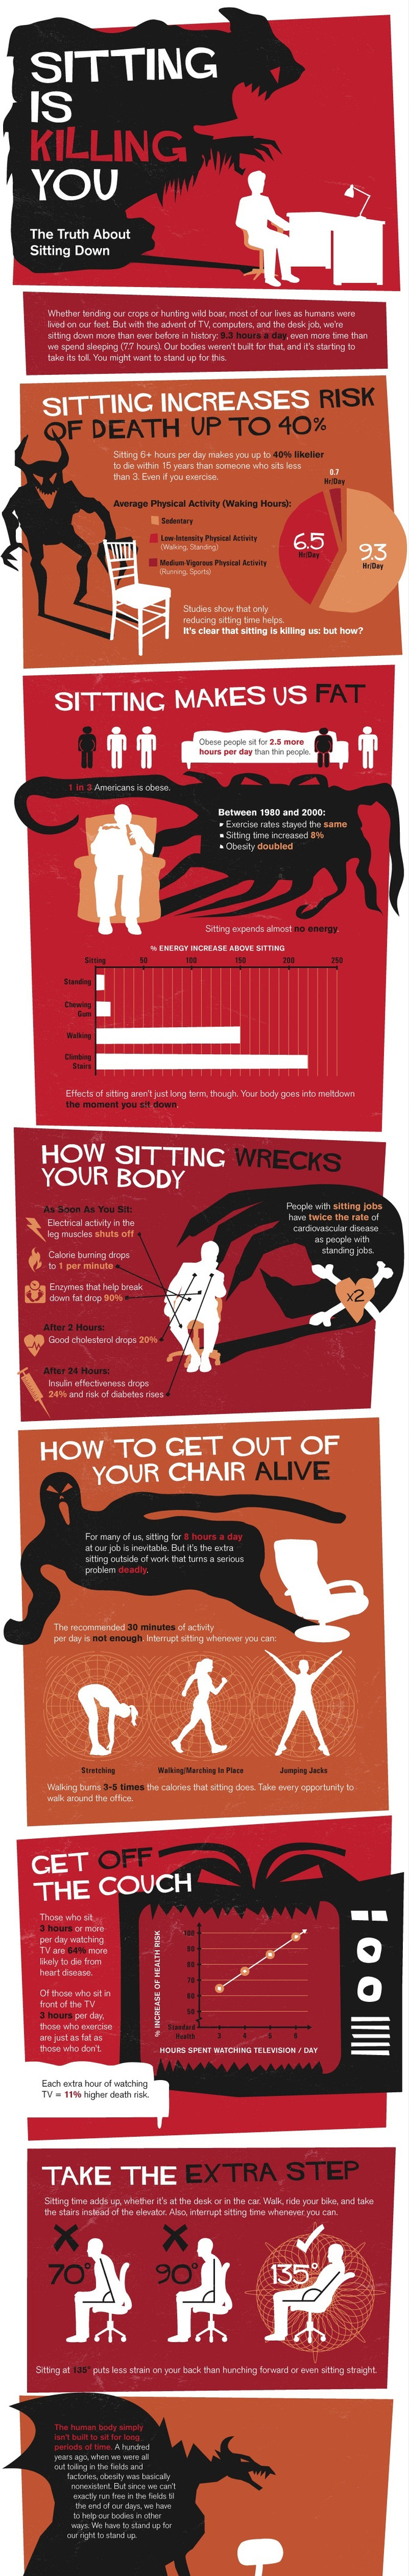 Why Sitting is Killing Us